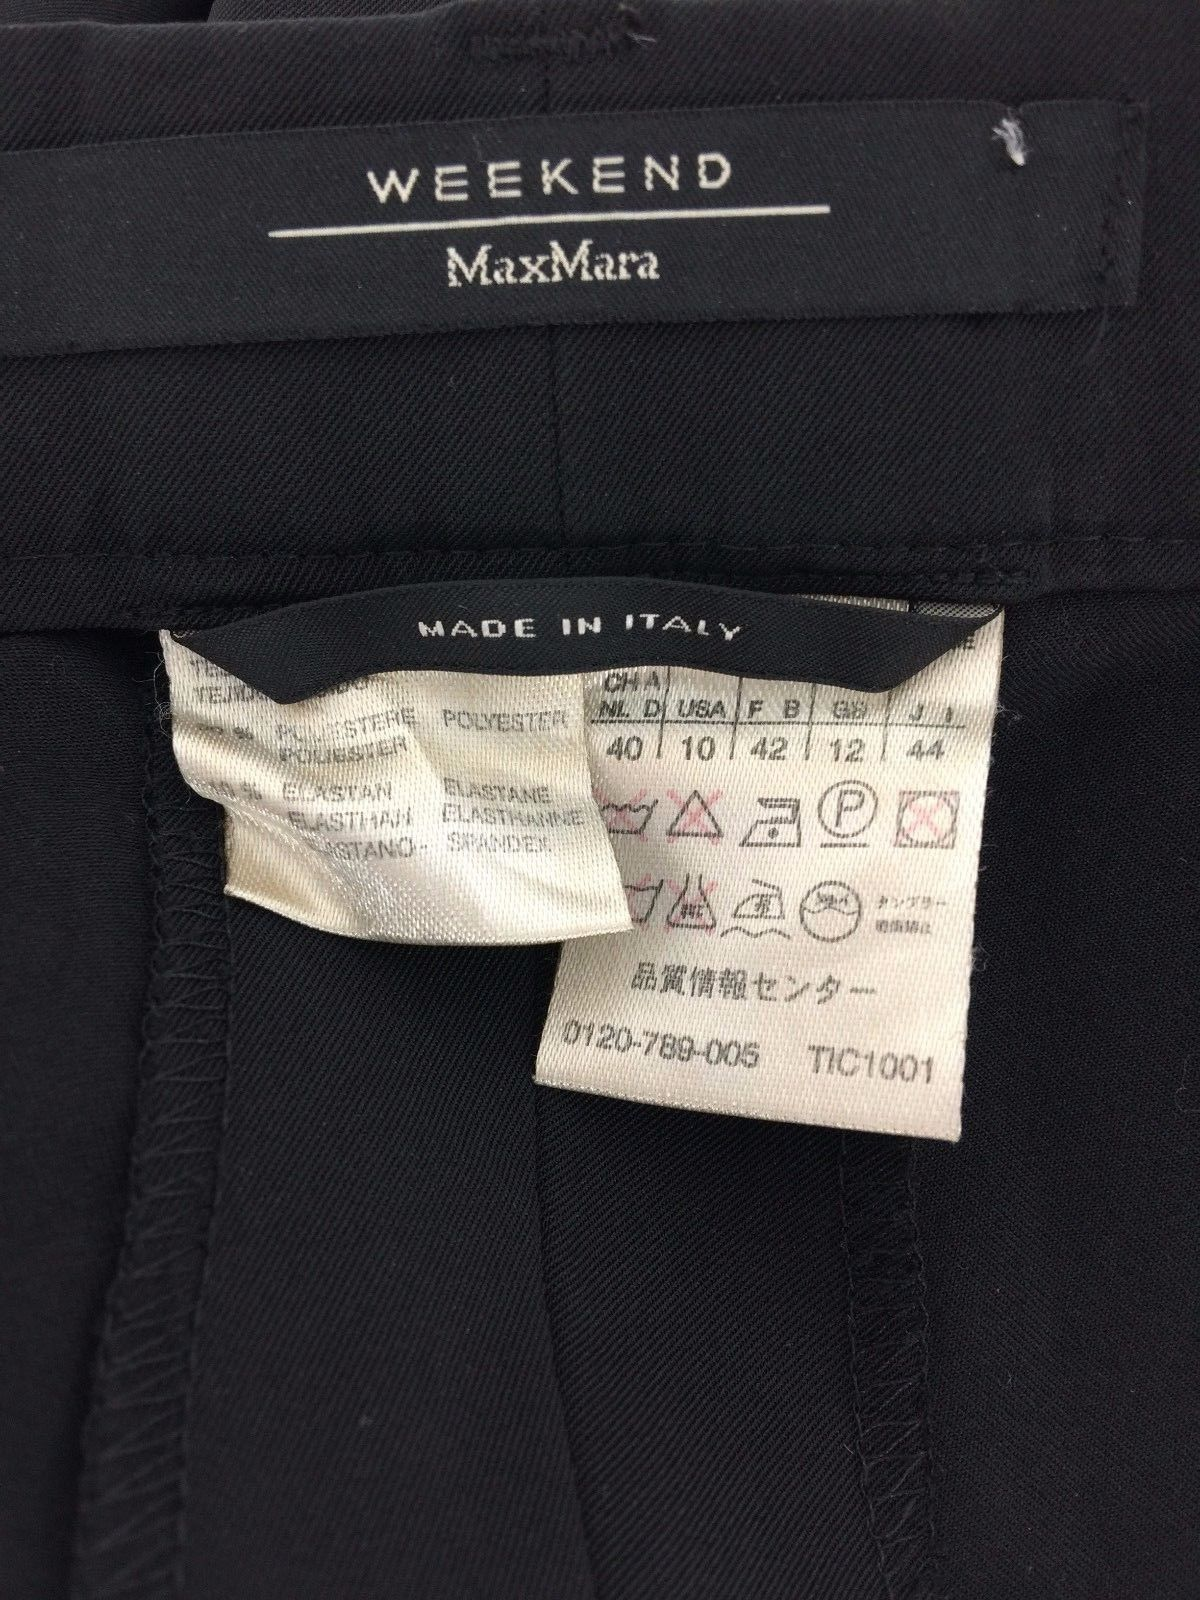 Max Mara Weekend 10 Large Dress Pant Black Suiting Stretch 3 Pocket Work Lined